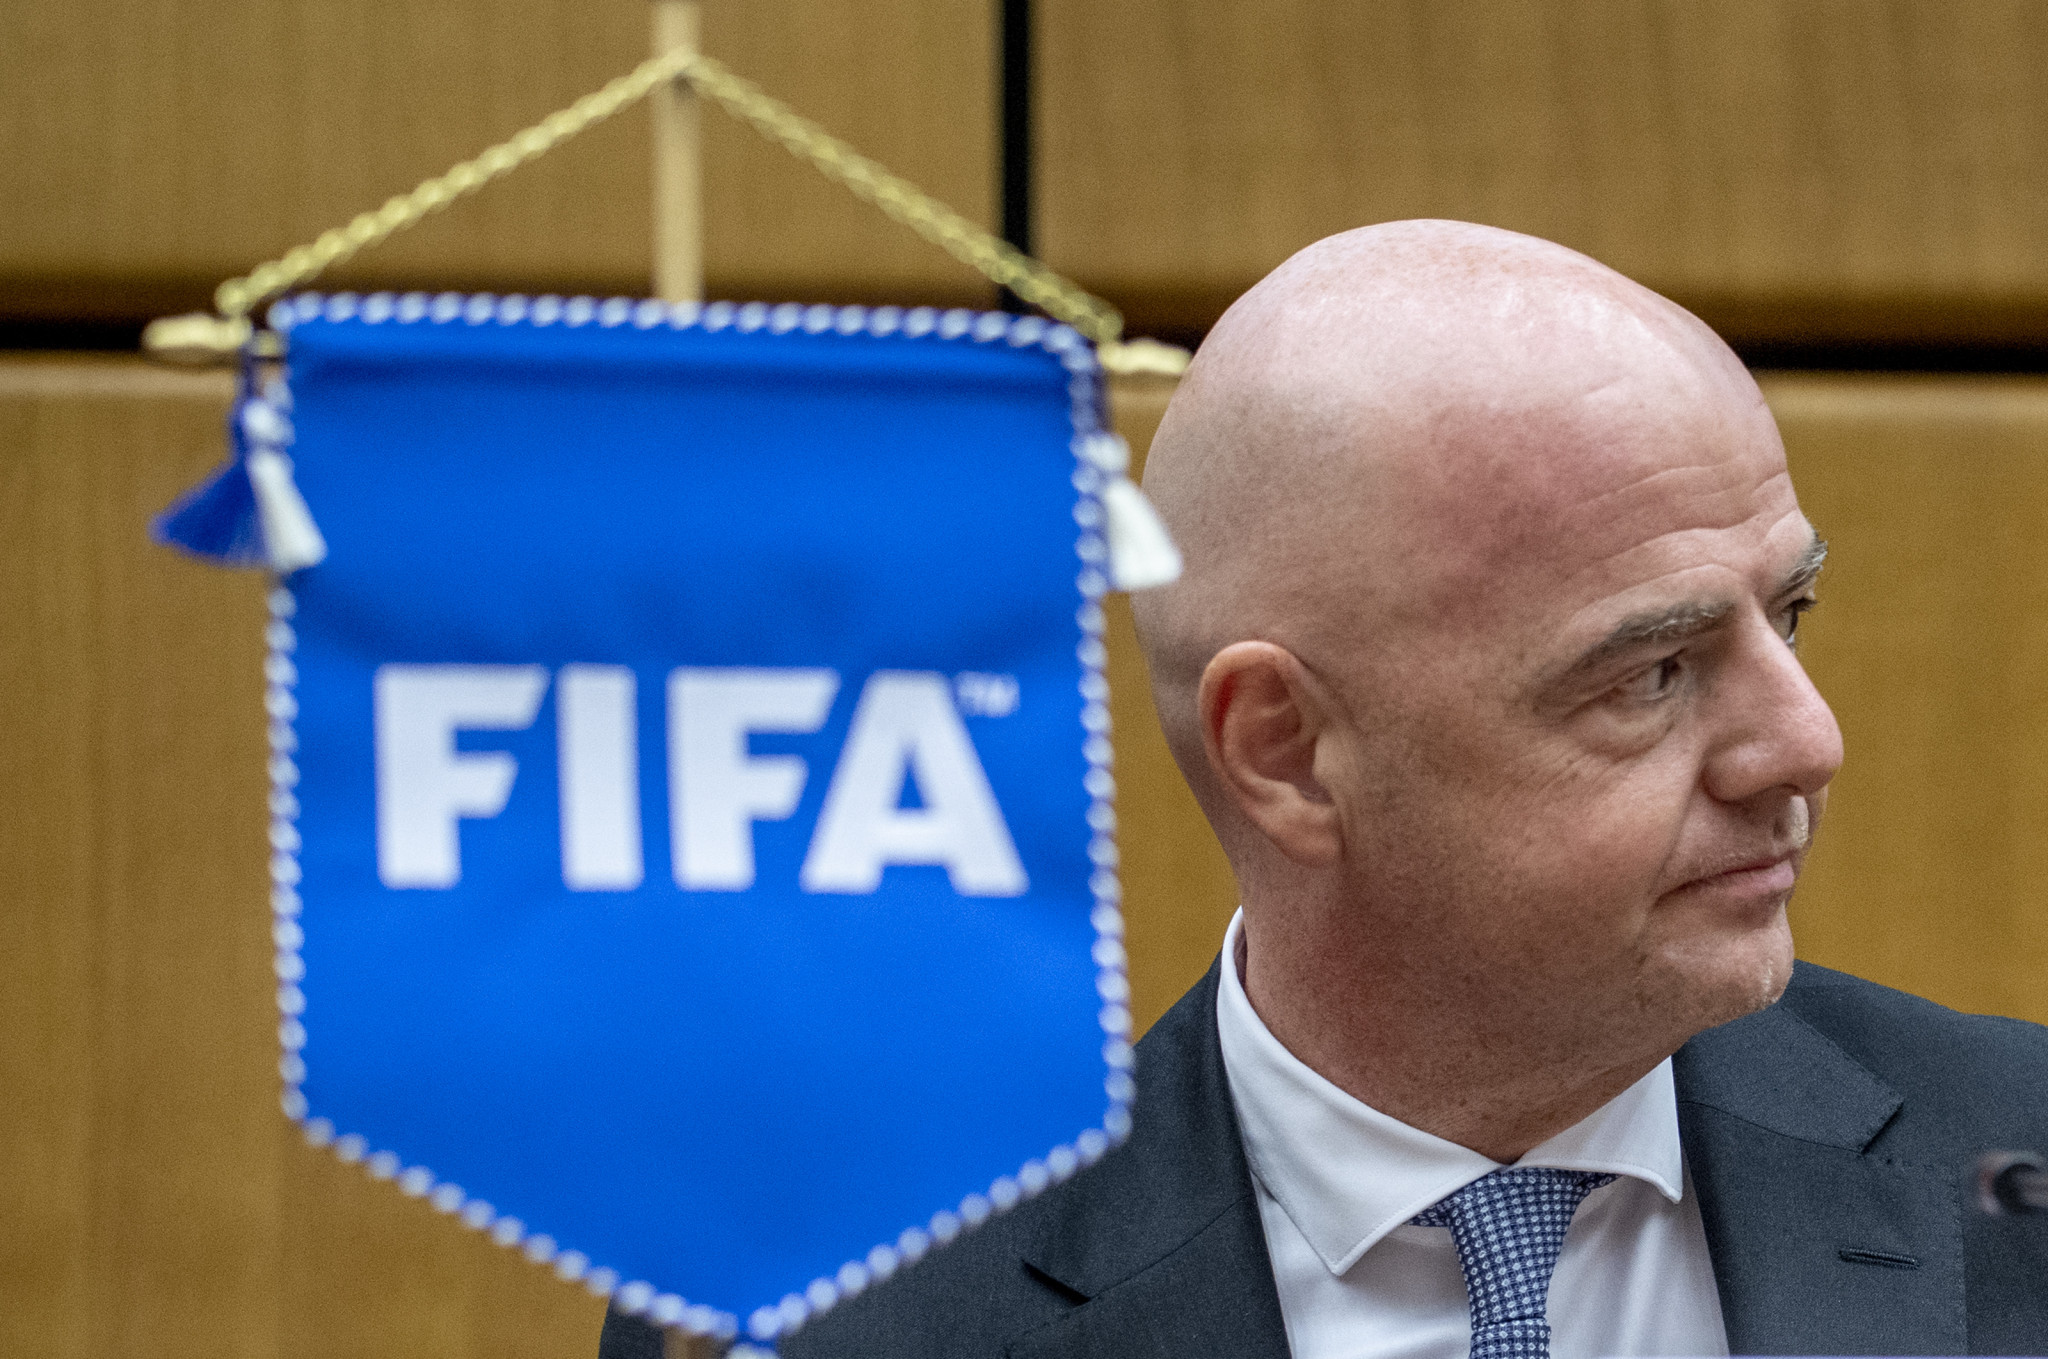 Infantino hails governance reforms as FIFA Compliance Summit begins